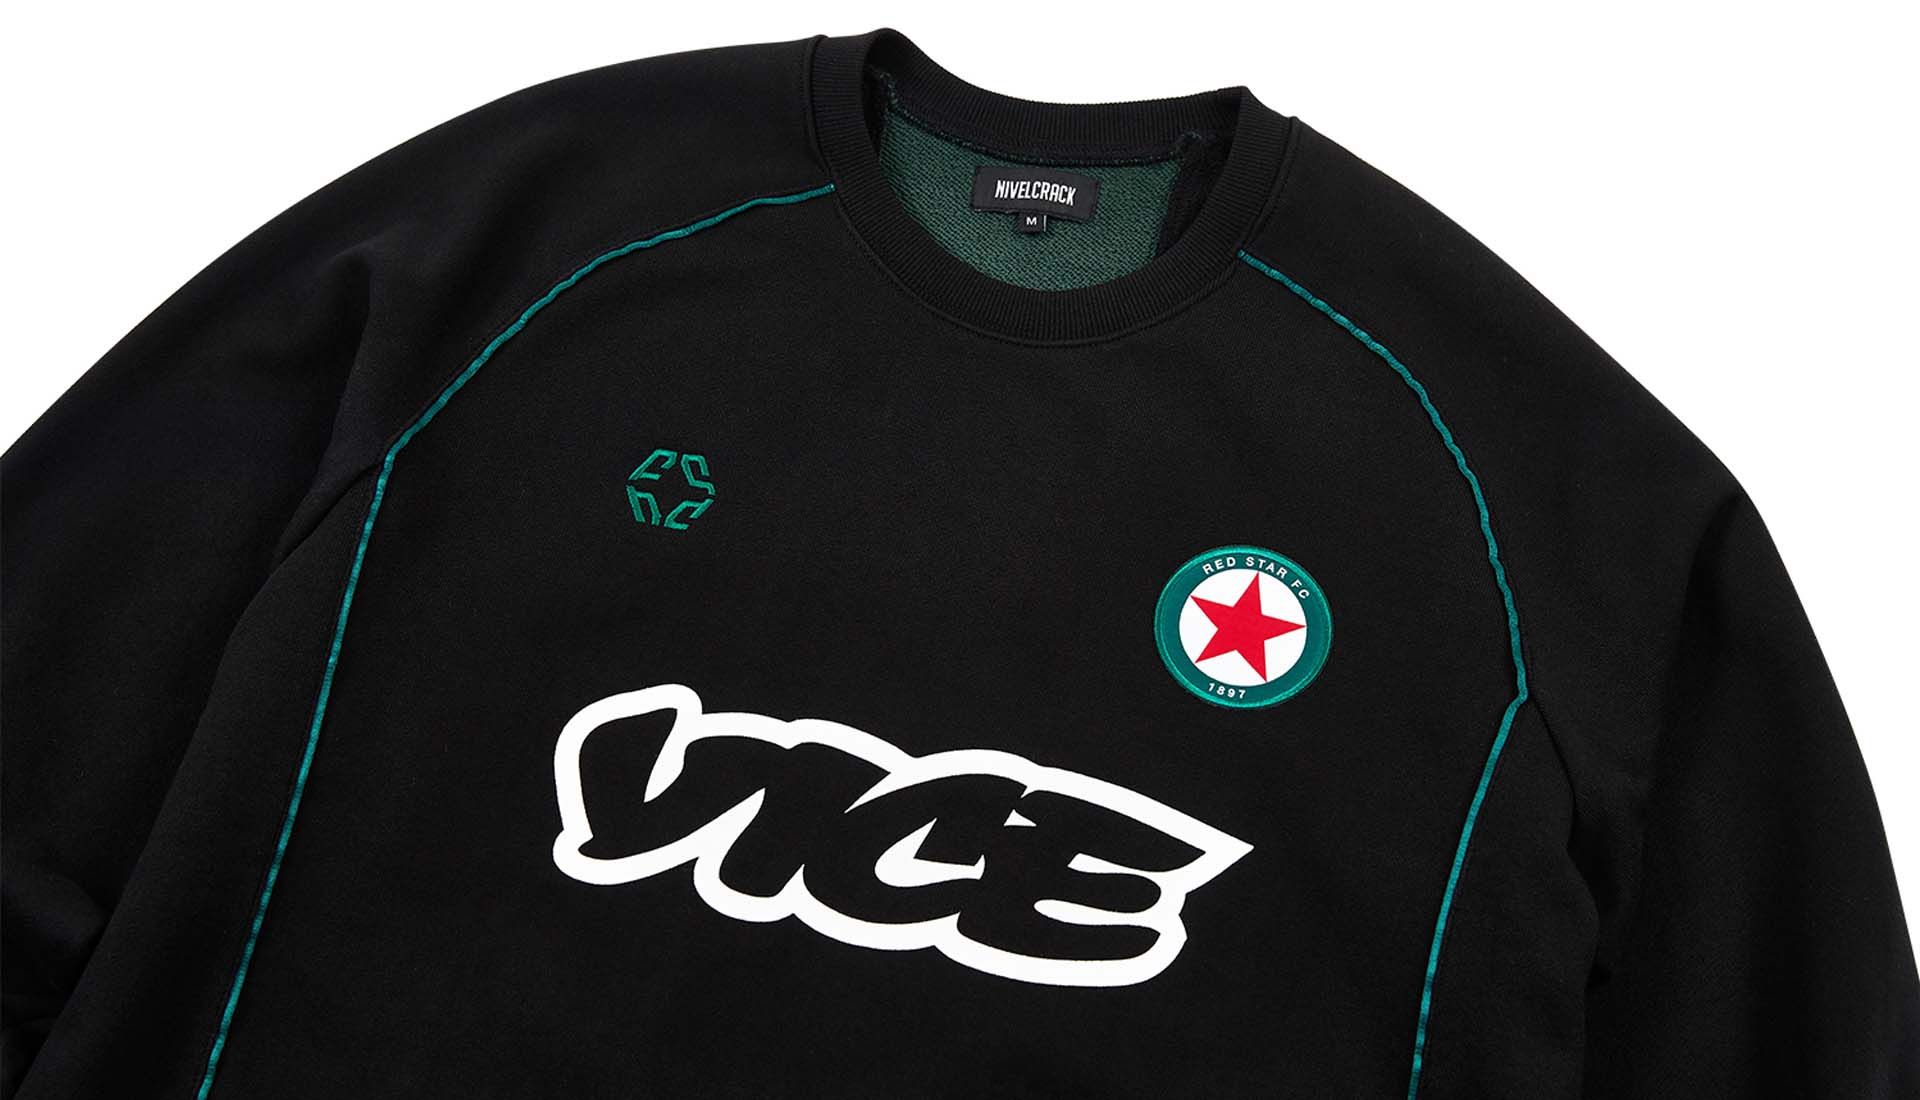 9fb83f82310 Nivelcrack x Red Star FC Collection Released - SoccerBible